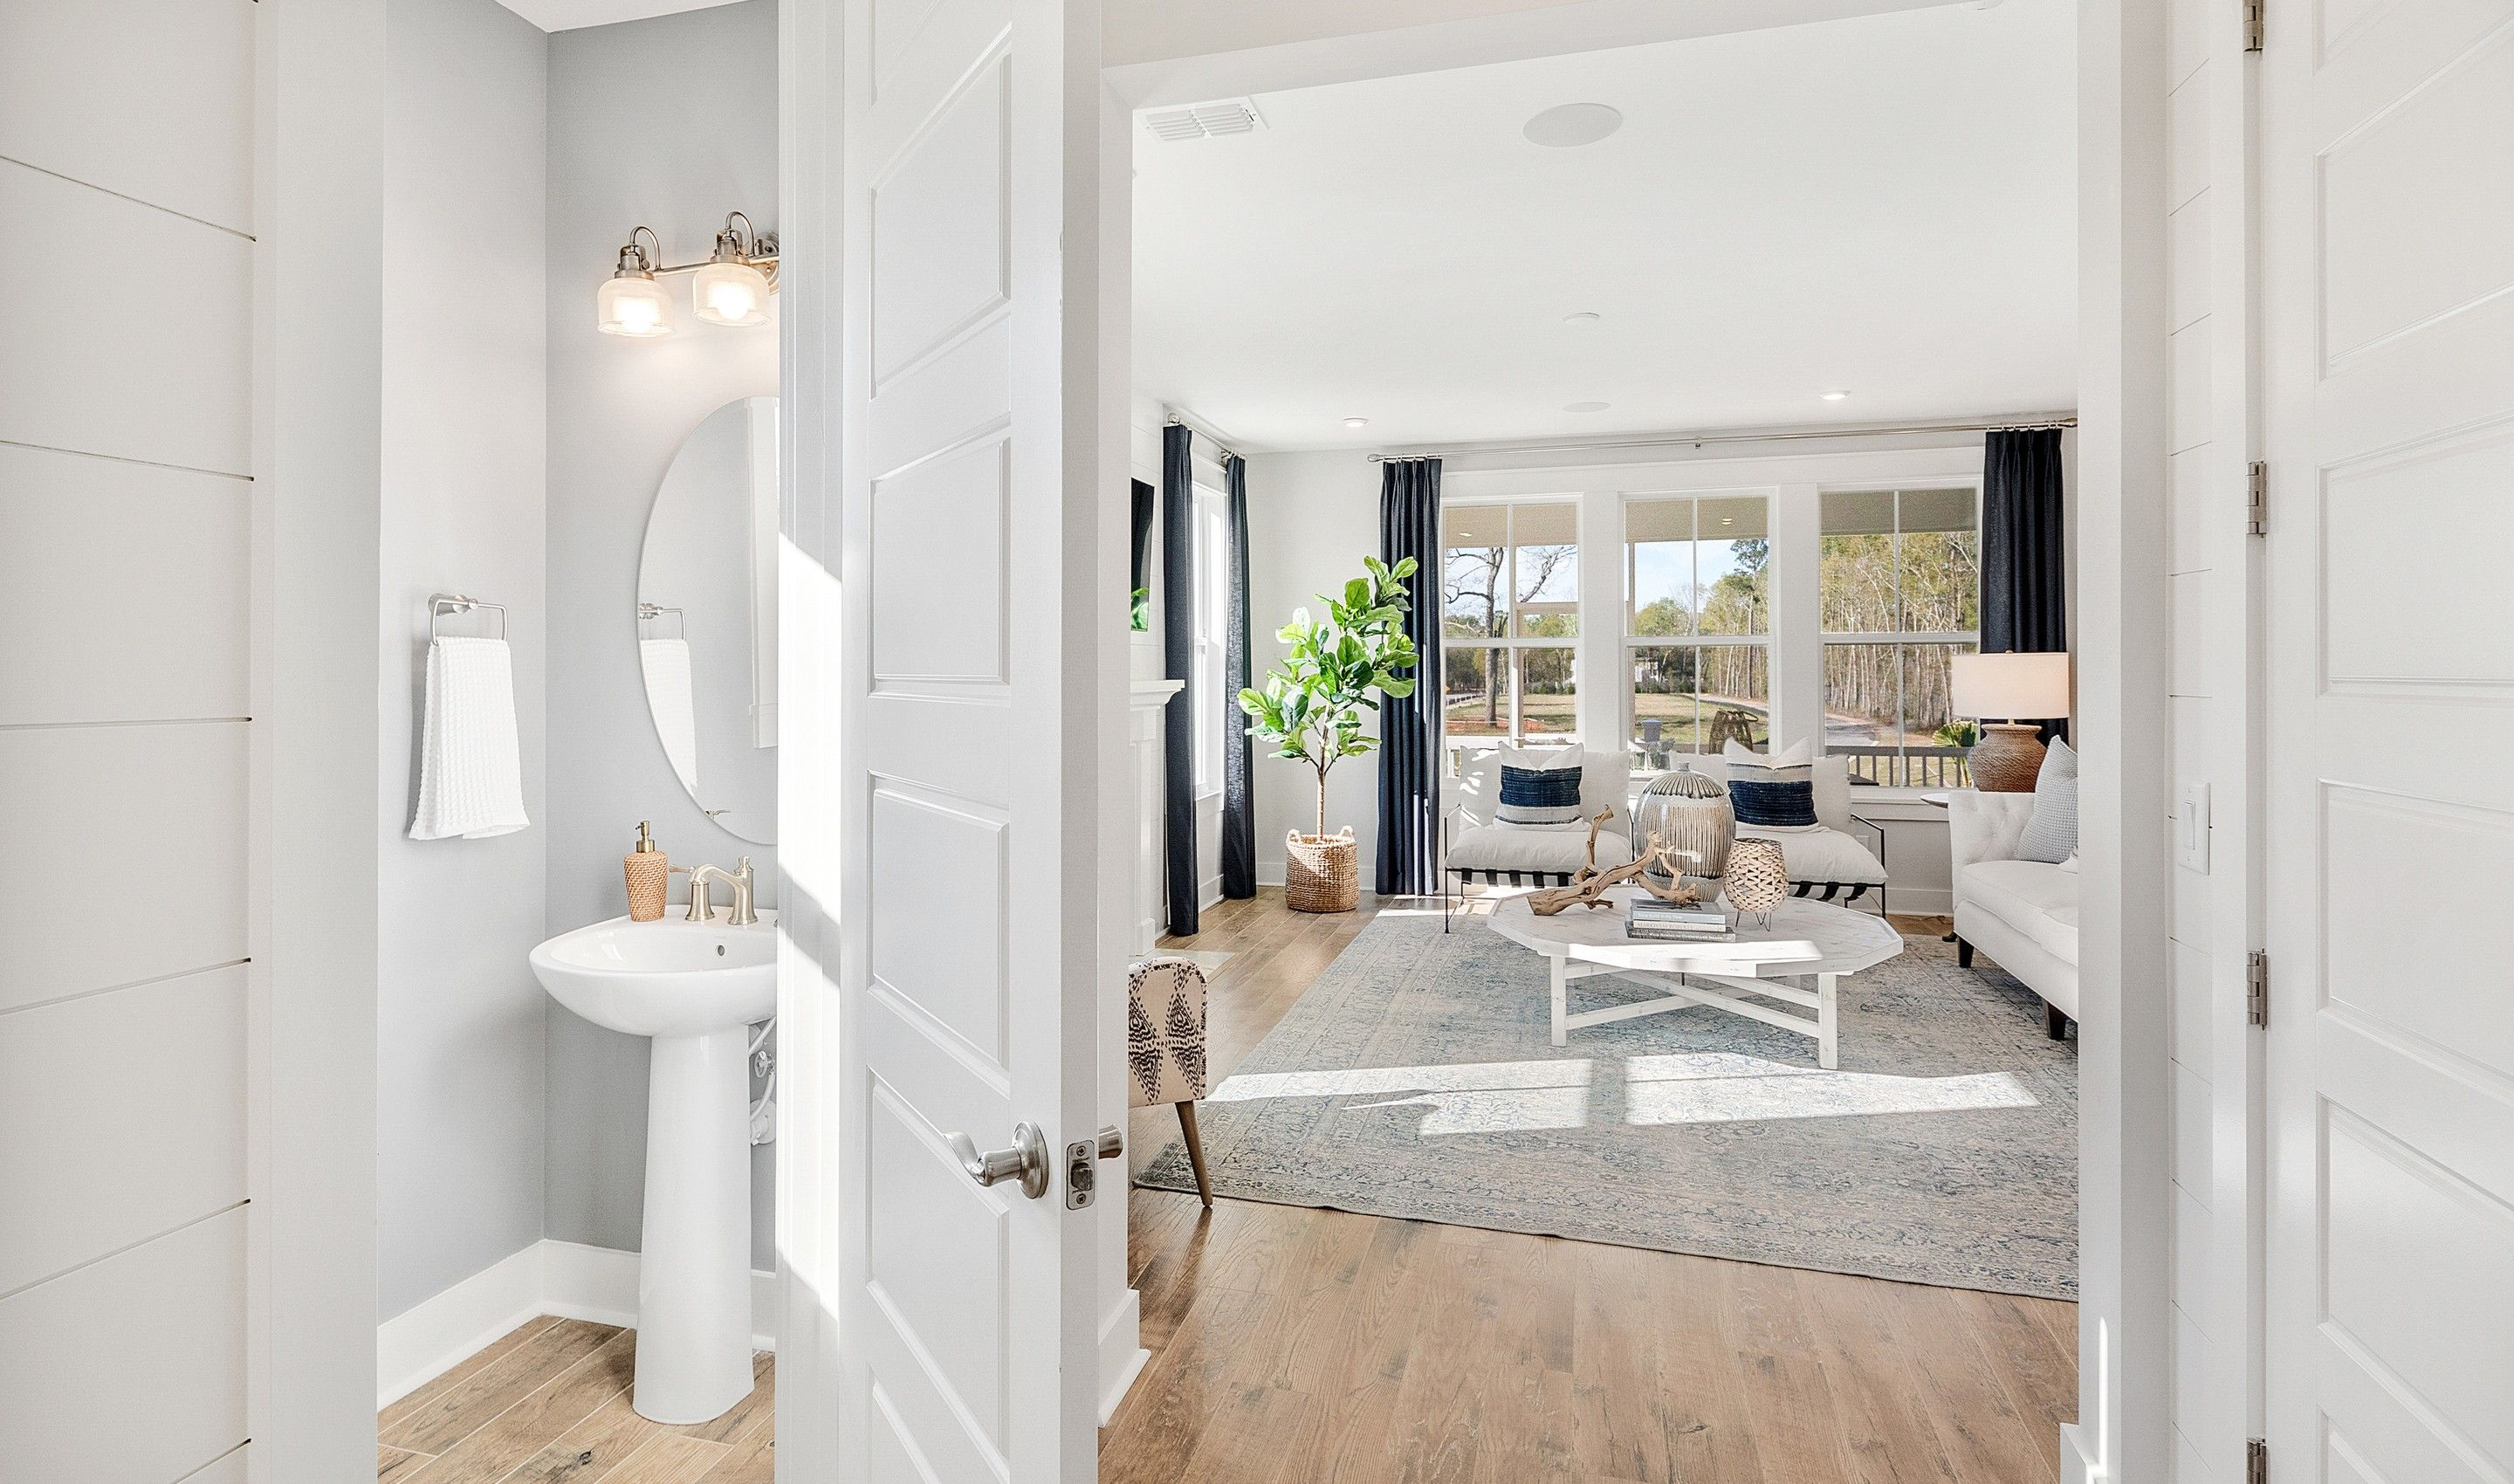 Bathroom featured in the Hamlin By K. Hovnanian® Homes in Charleston, SC